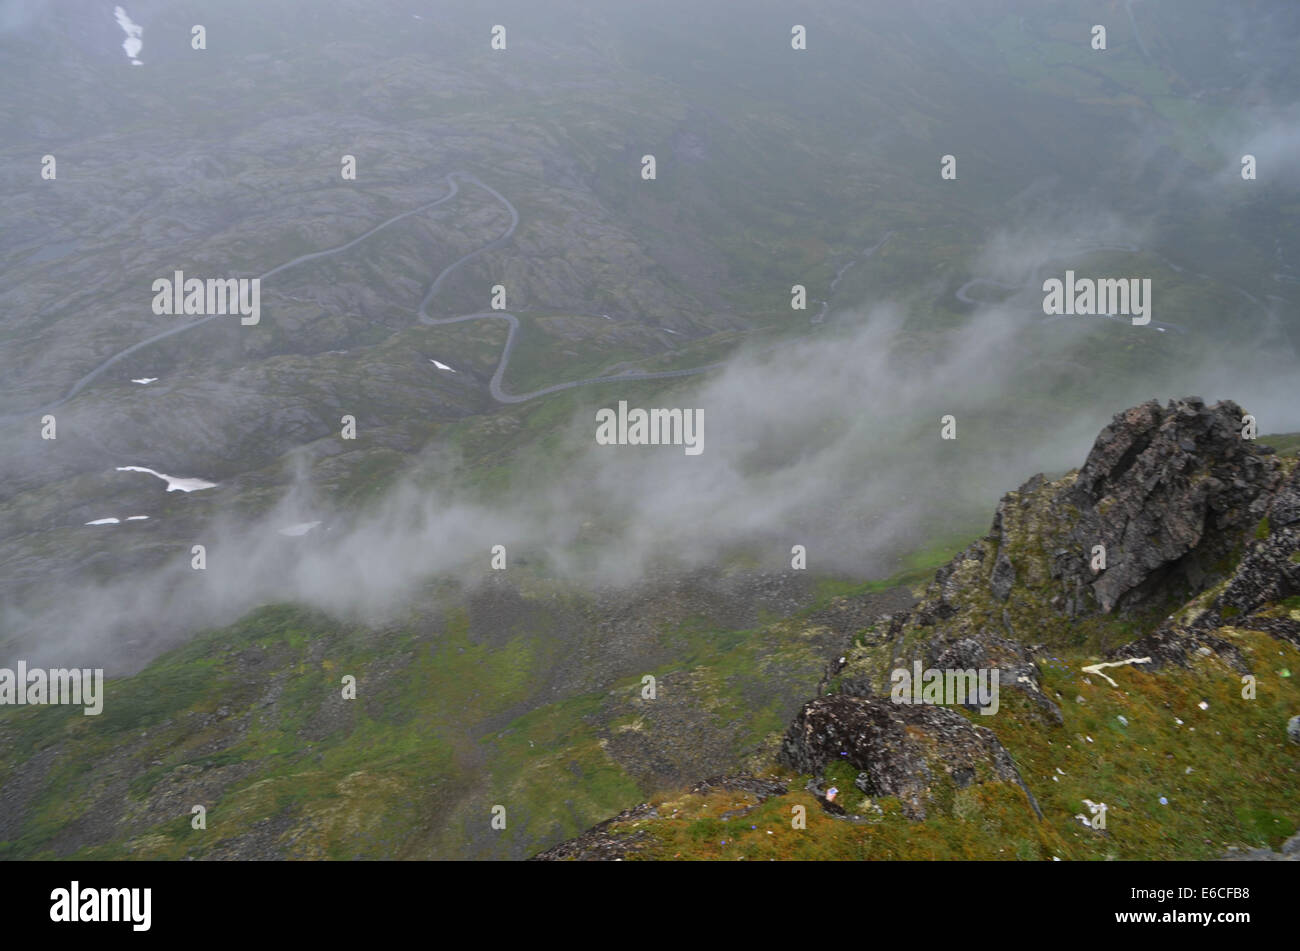 Daisnibba Pass, southern Norway in bad weather, the pass is 1500' high and is equally as beautiful in good weather - Stock Image